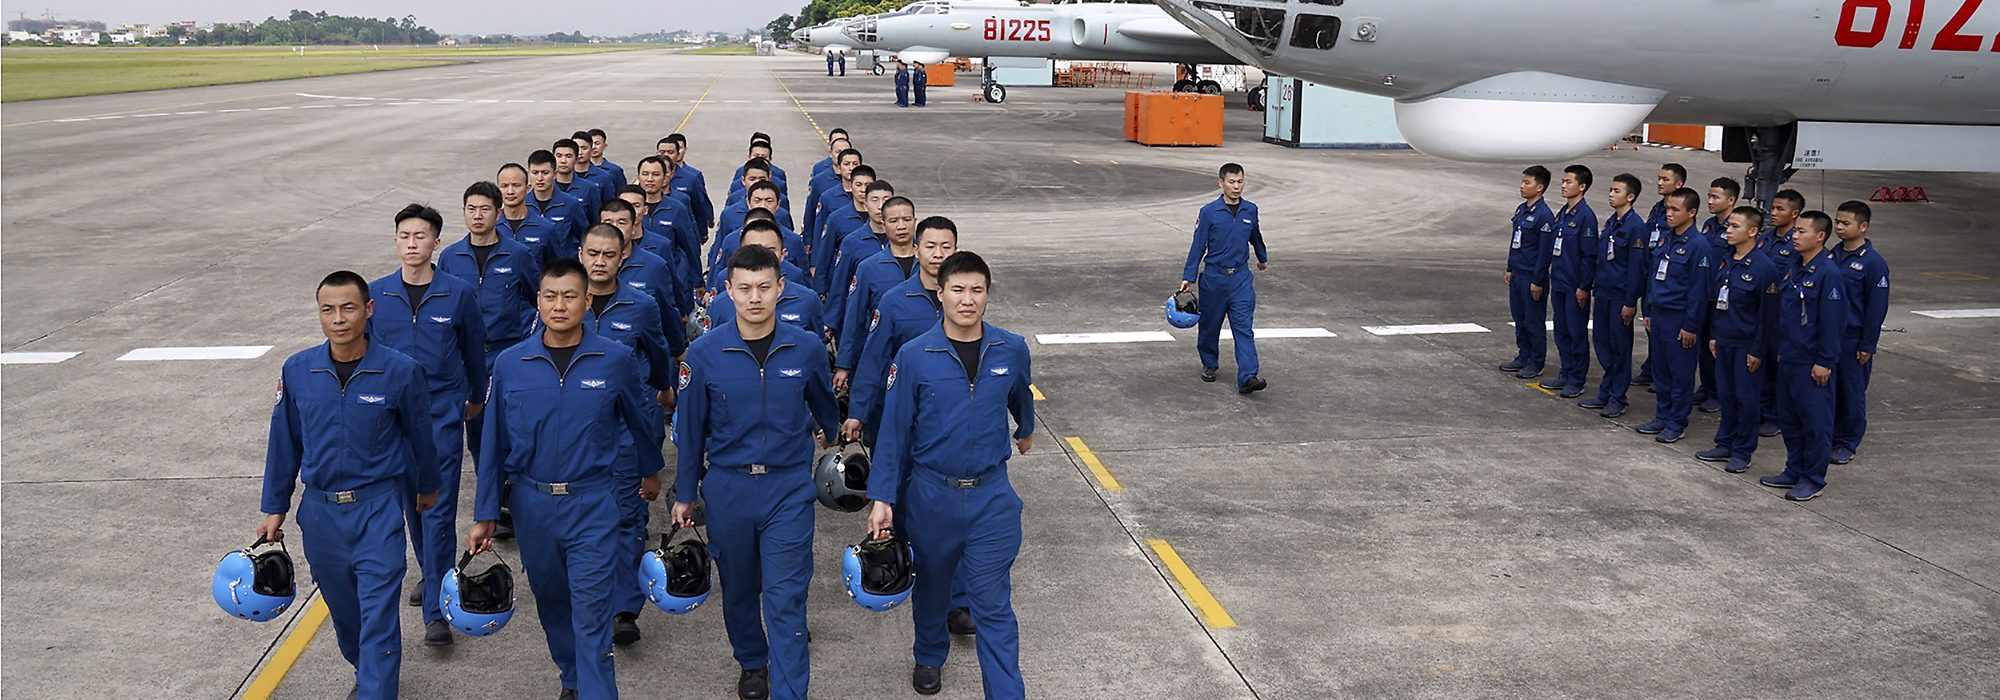 1020_Strategy_Policy_China_Bomber_Crews